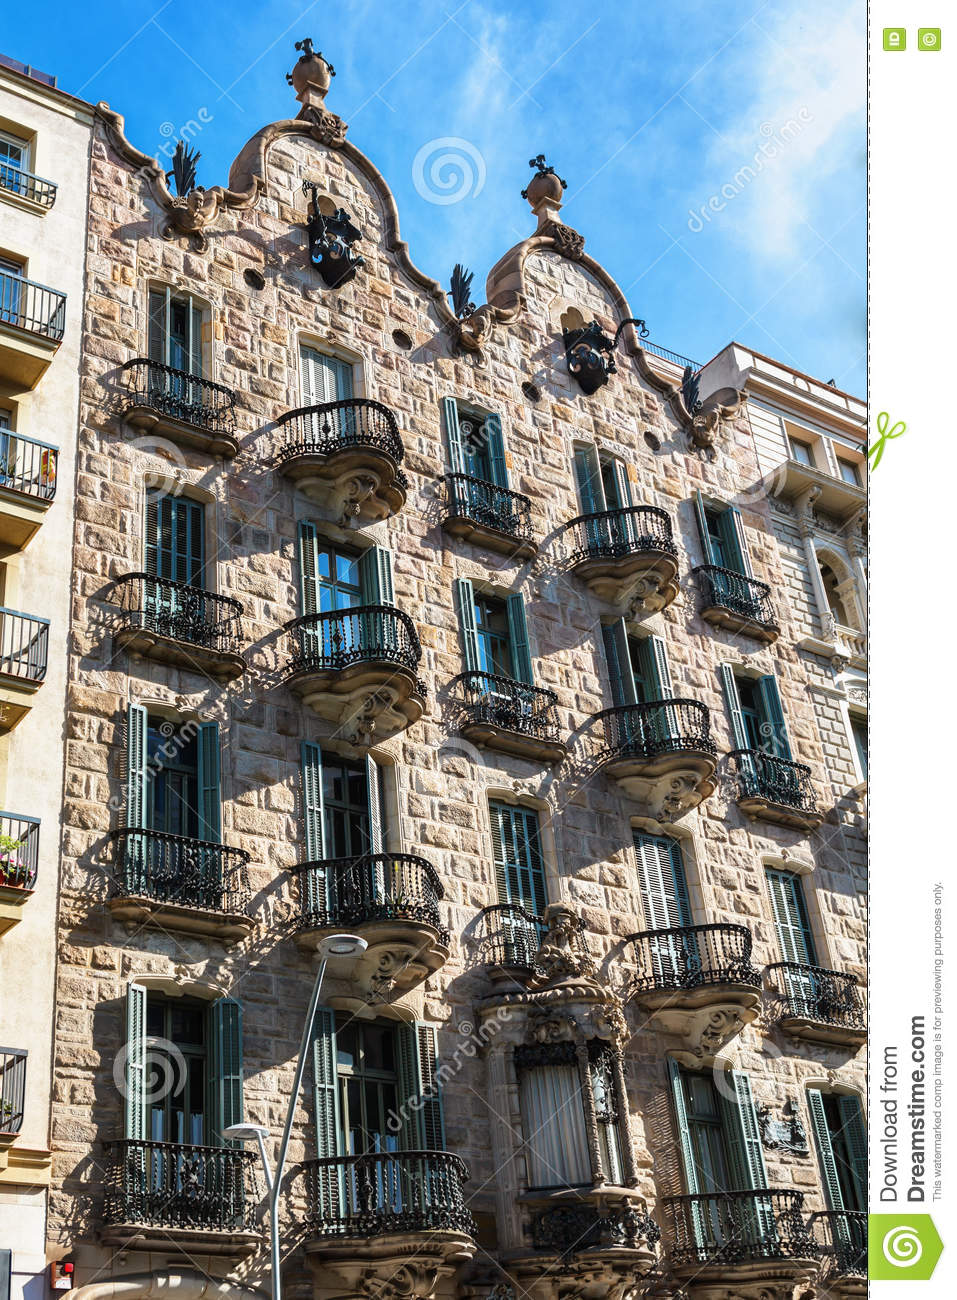 Barcelona, Spain - April 18, 2016: House facade Casa Calvet, designed by Antonio Gaudi